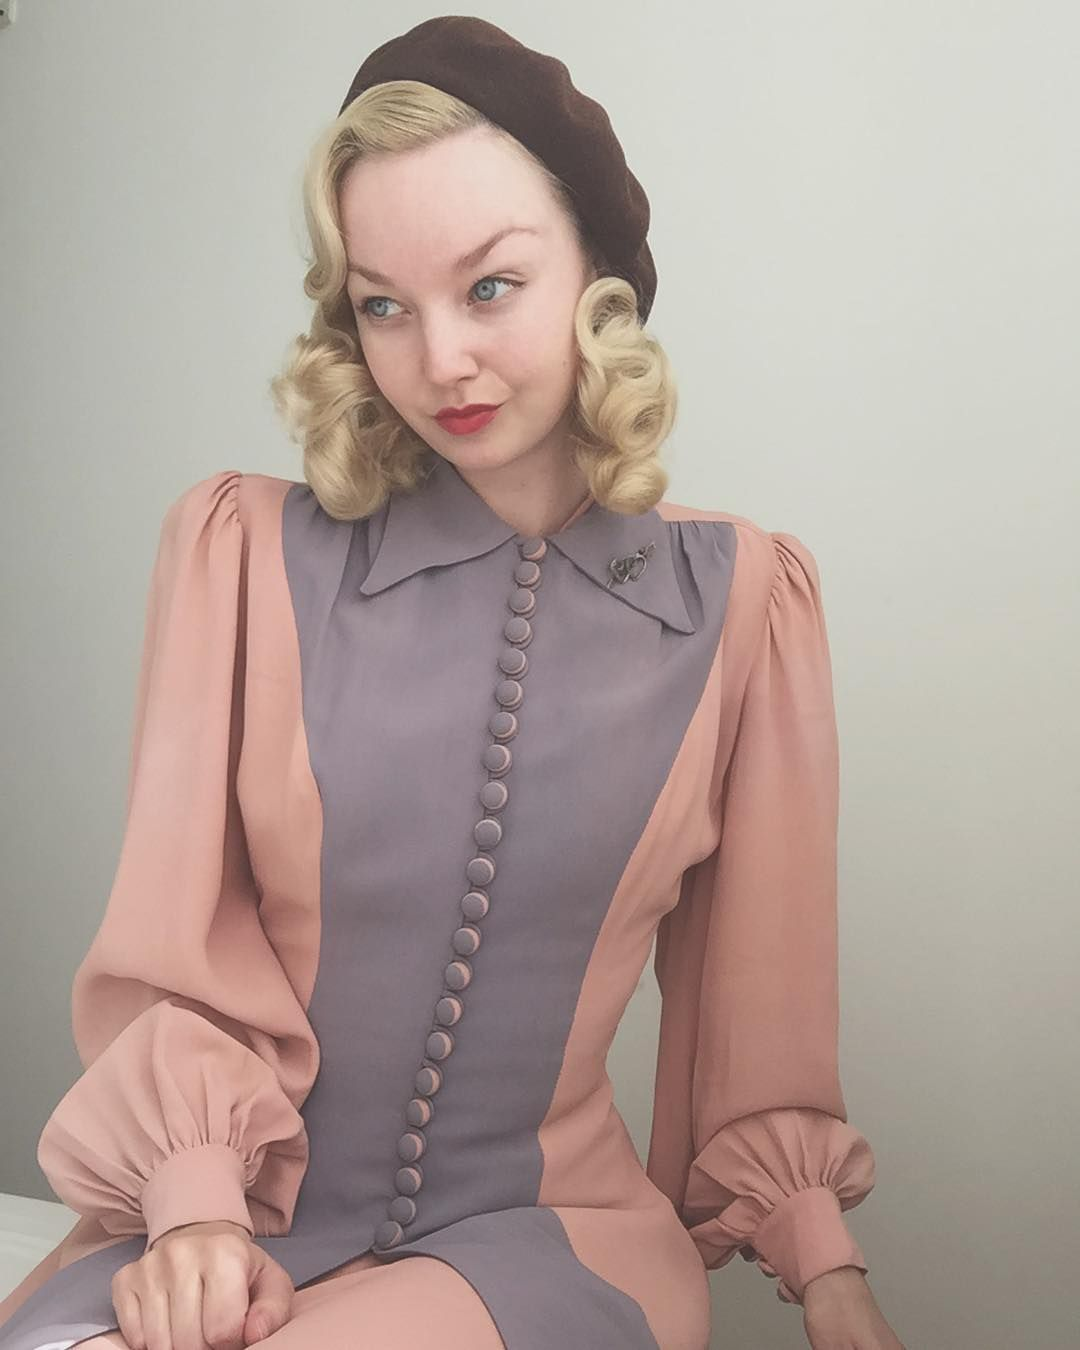 Vintage 1940s Color Block Swag Dress: Going To The Royal Theatre To Watch A Performance Based On